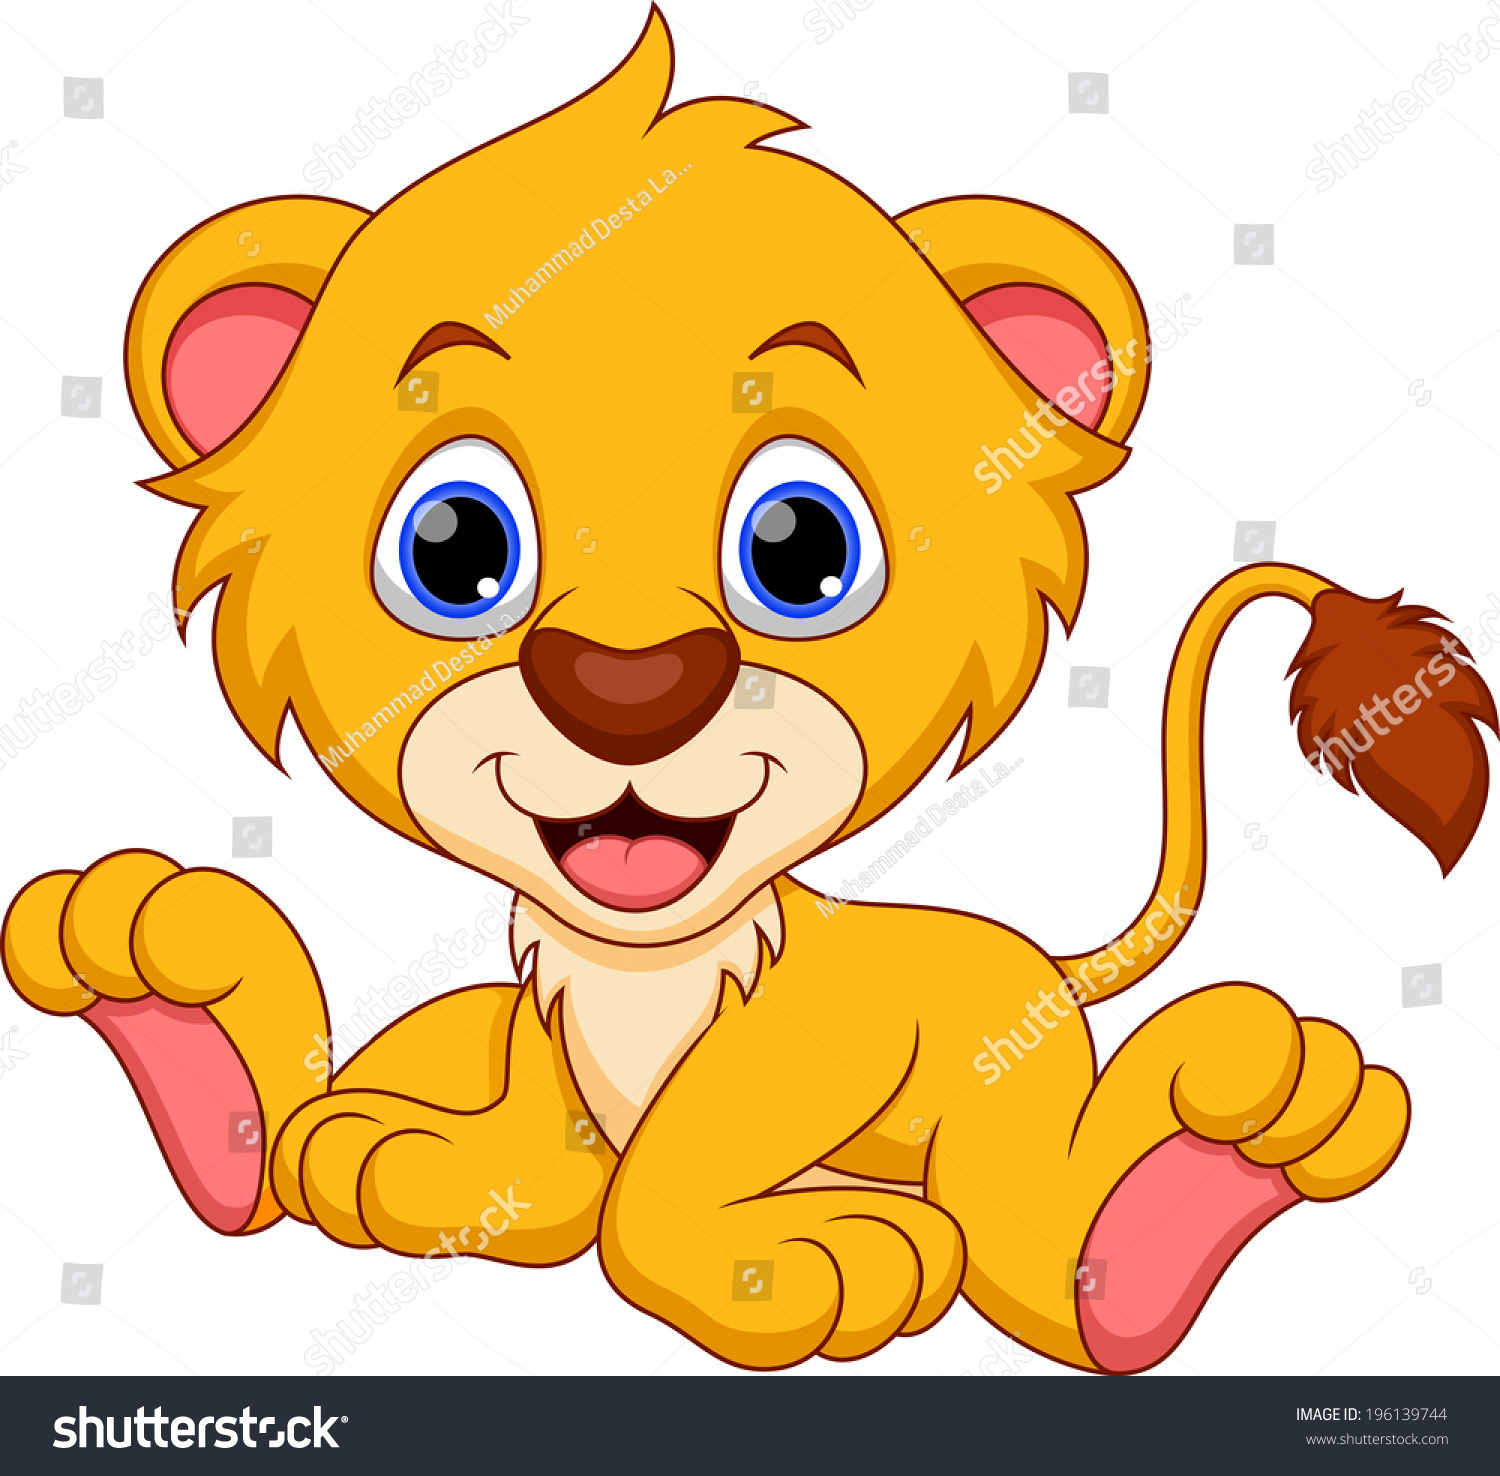 Aninimal Book: Cute Baby Lion Cartoon Stock Vector 196139744 - Shutterstock